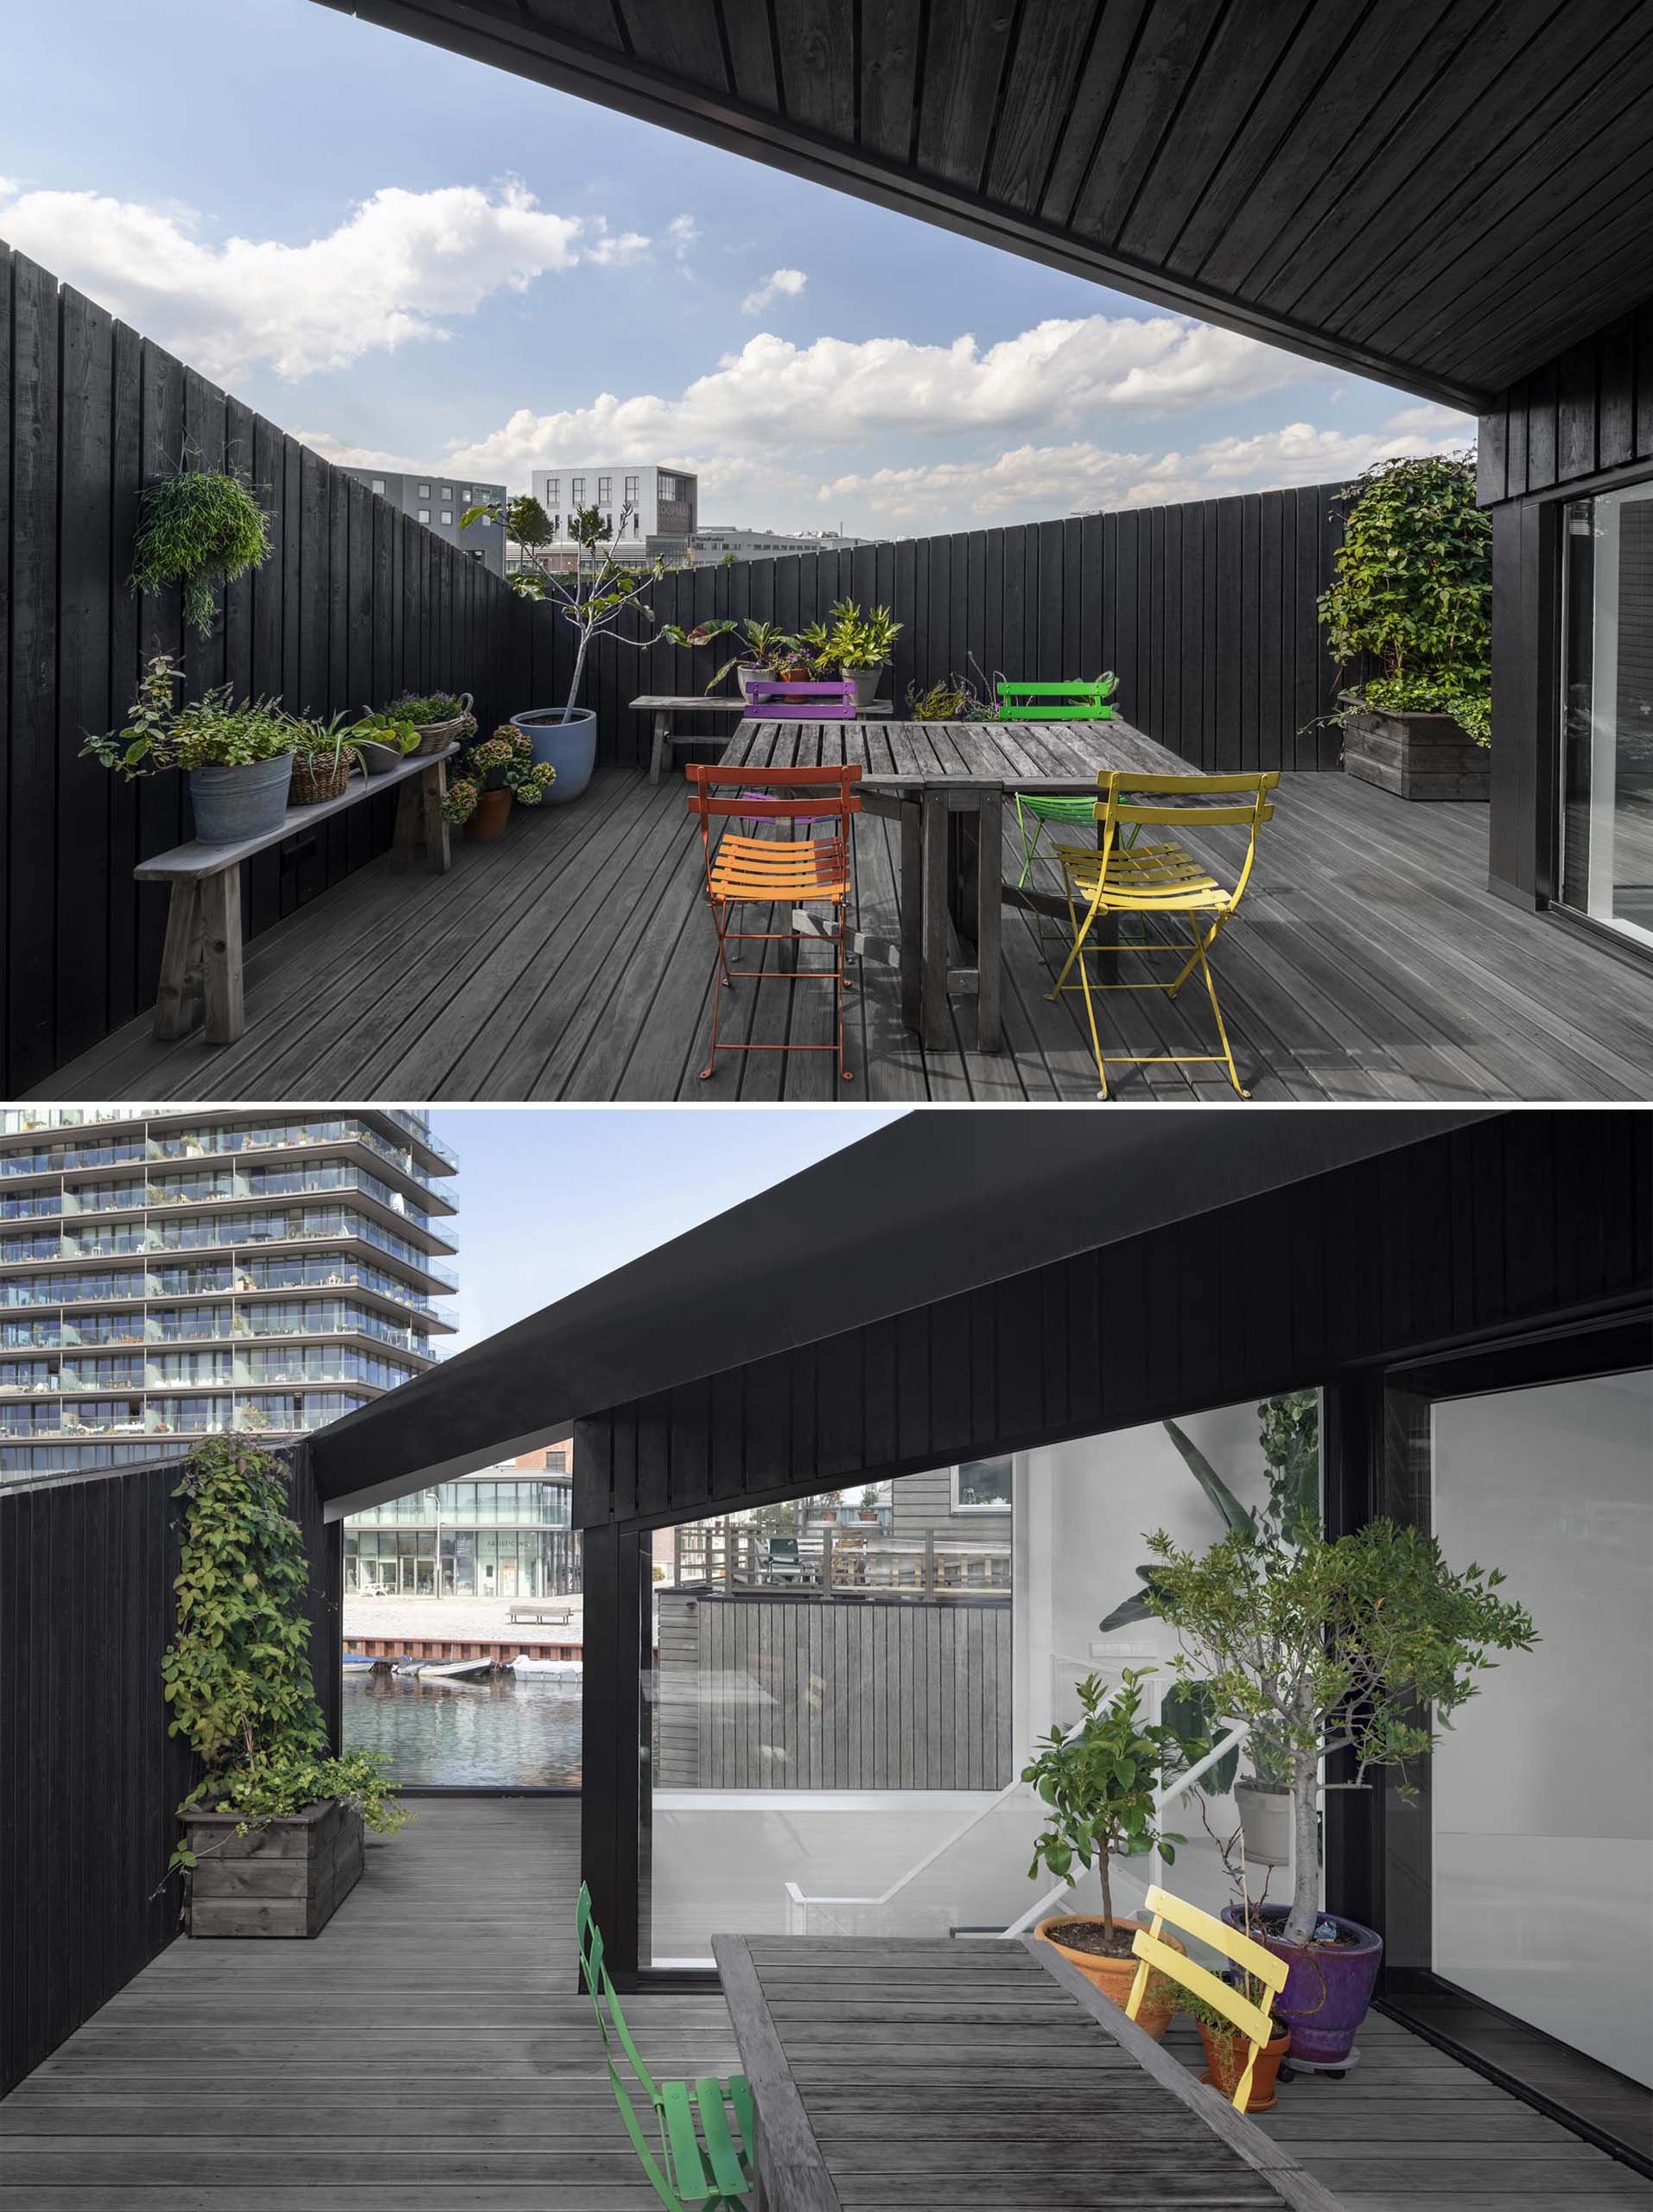 A sense of privacy has been created for the rooftop deck by having angled walls.